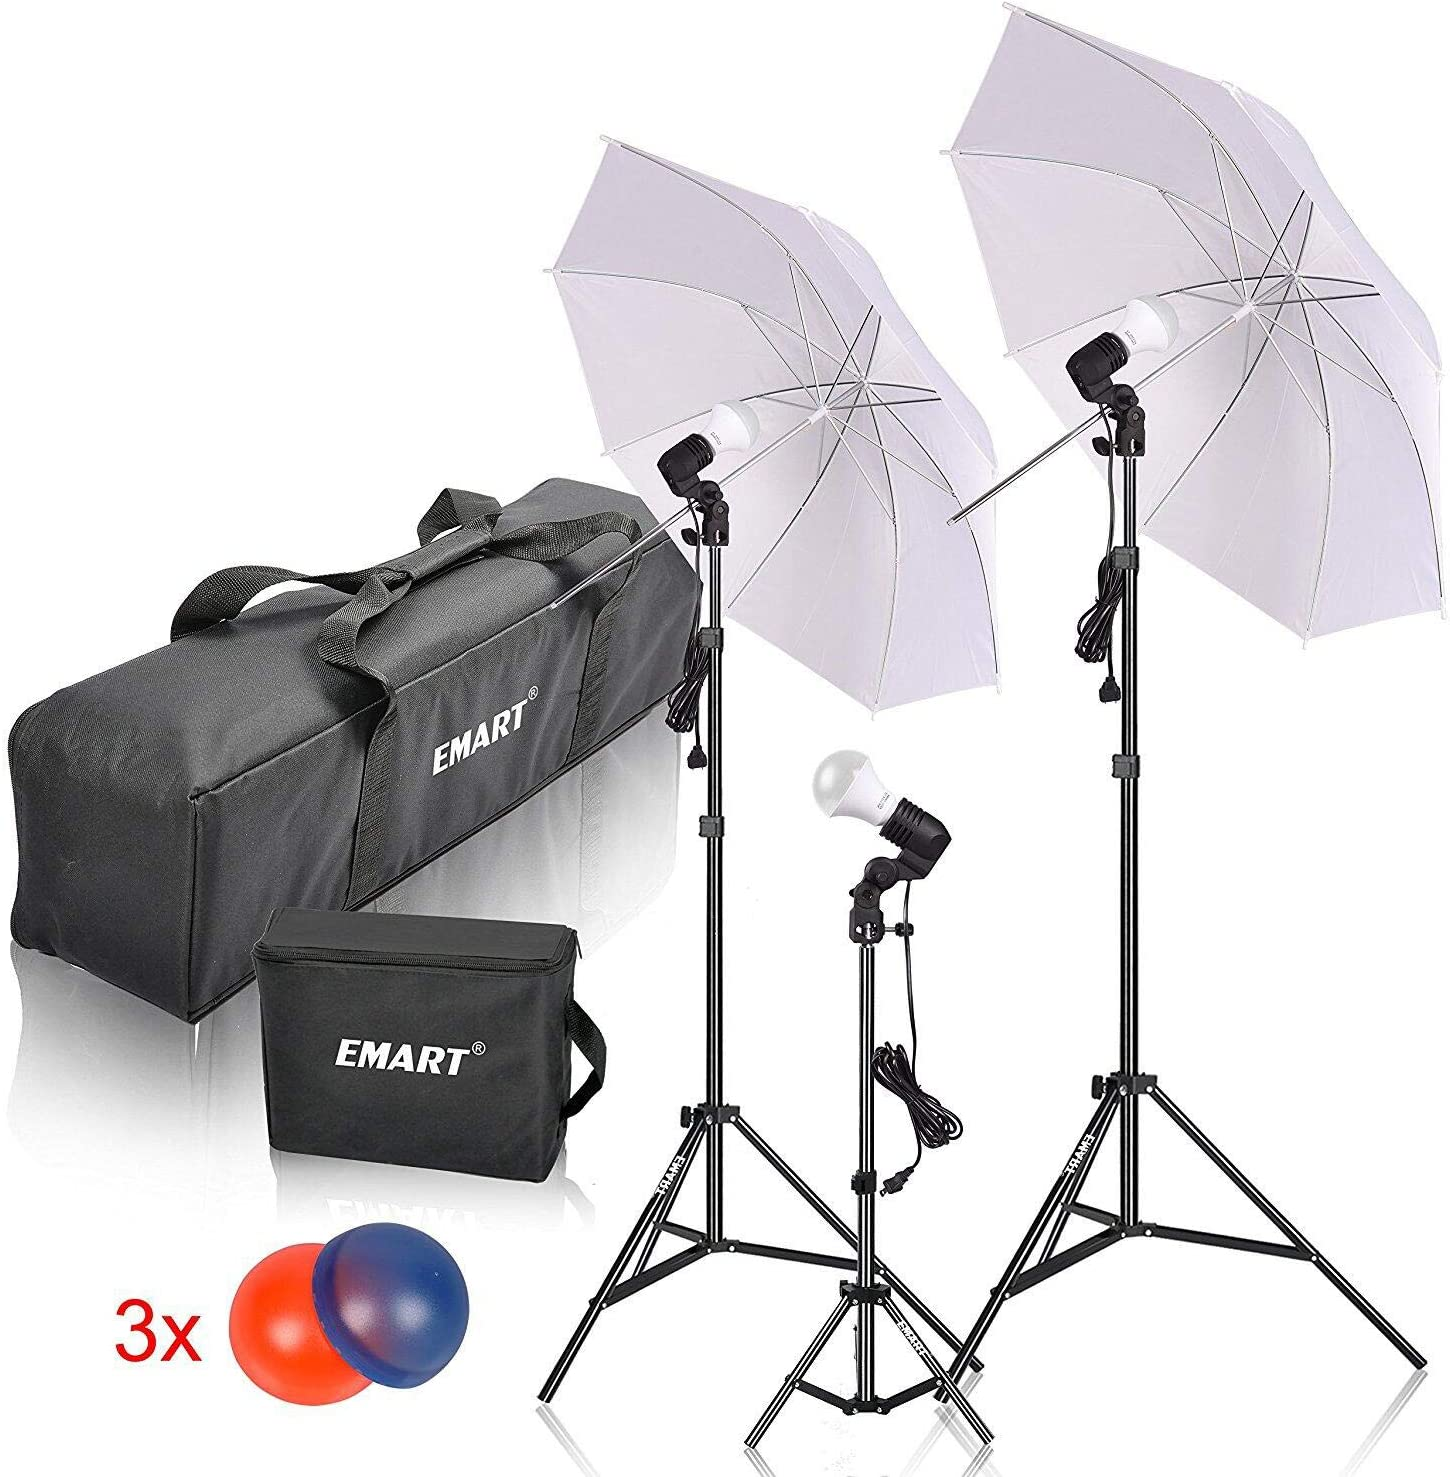 Umbrella Reflector Light Emart Studio LED Photography Umbrella Lighting Kit Continuous Lighting 500W 5500K LED Photo Lights for Camera Lighting Portrait Video Shooting